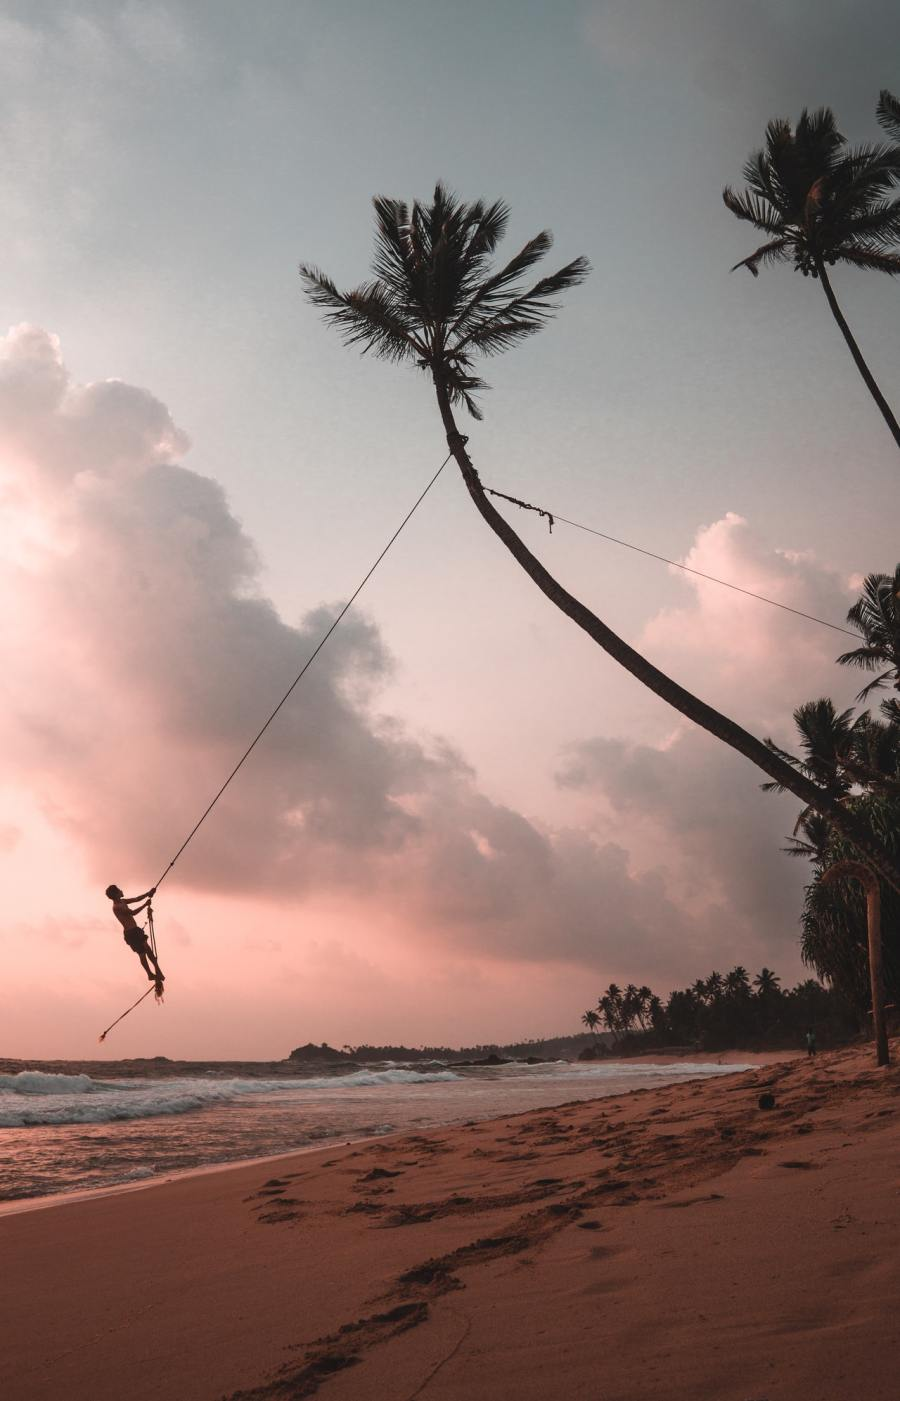 person on a tree swing along beach